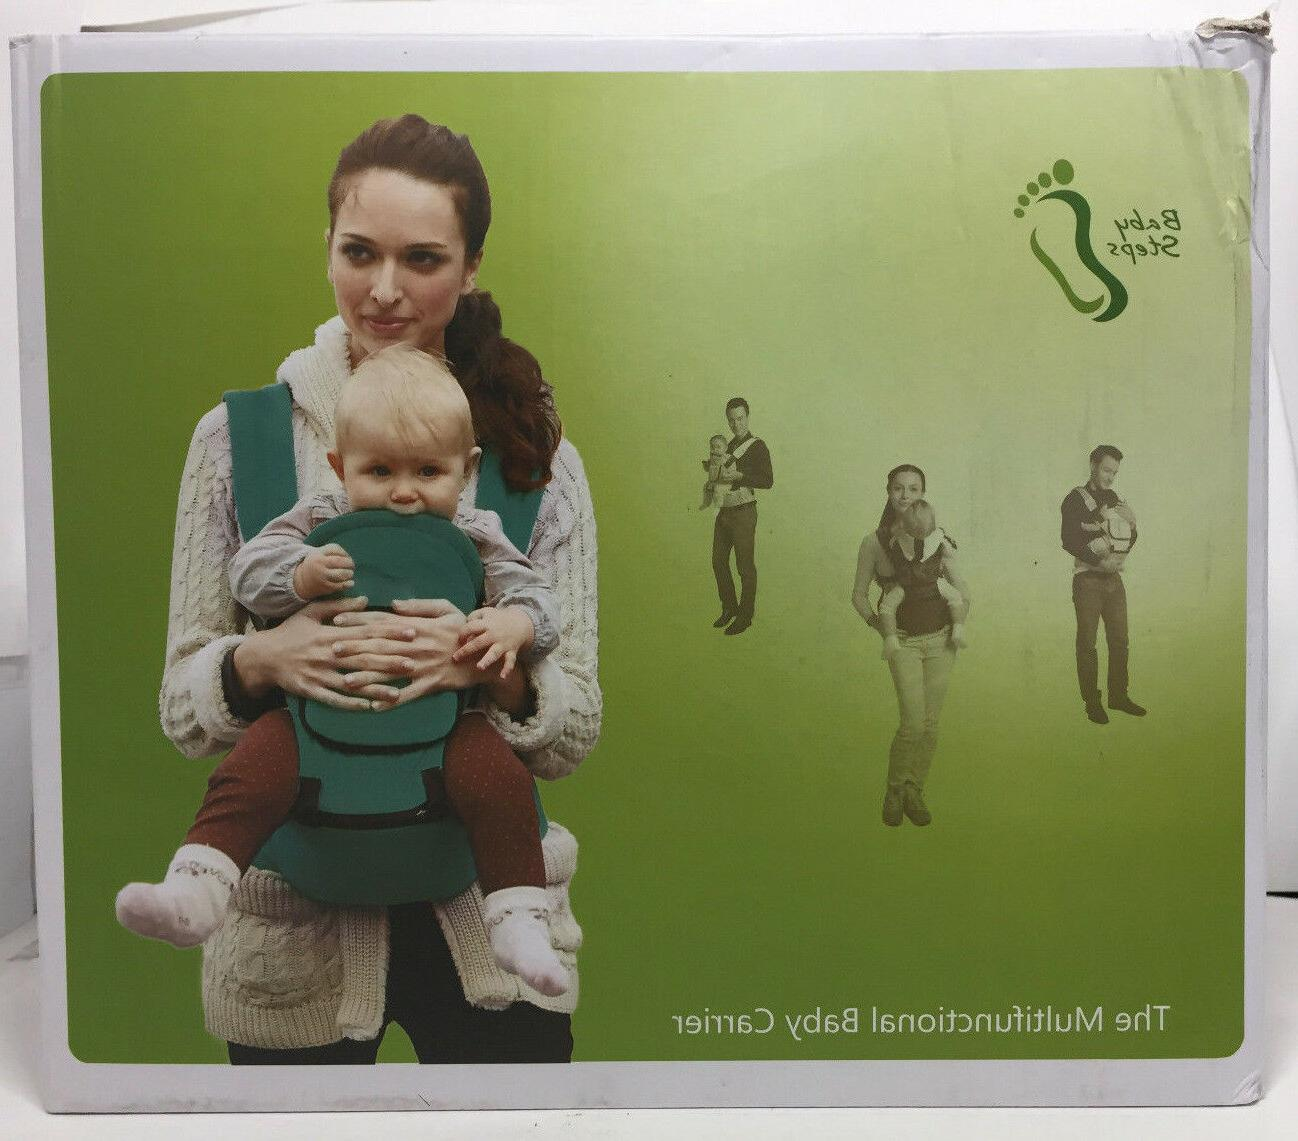 babysteps hip seat multifunctional baby carrier mc1